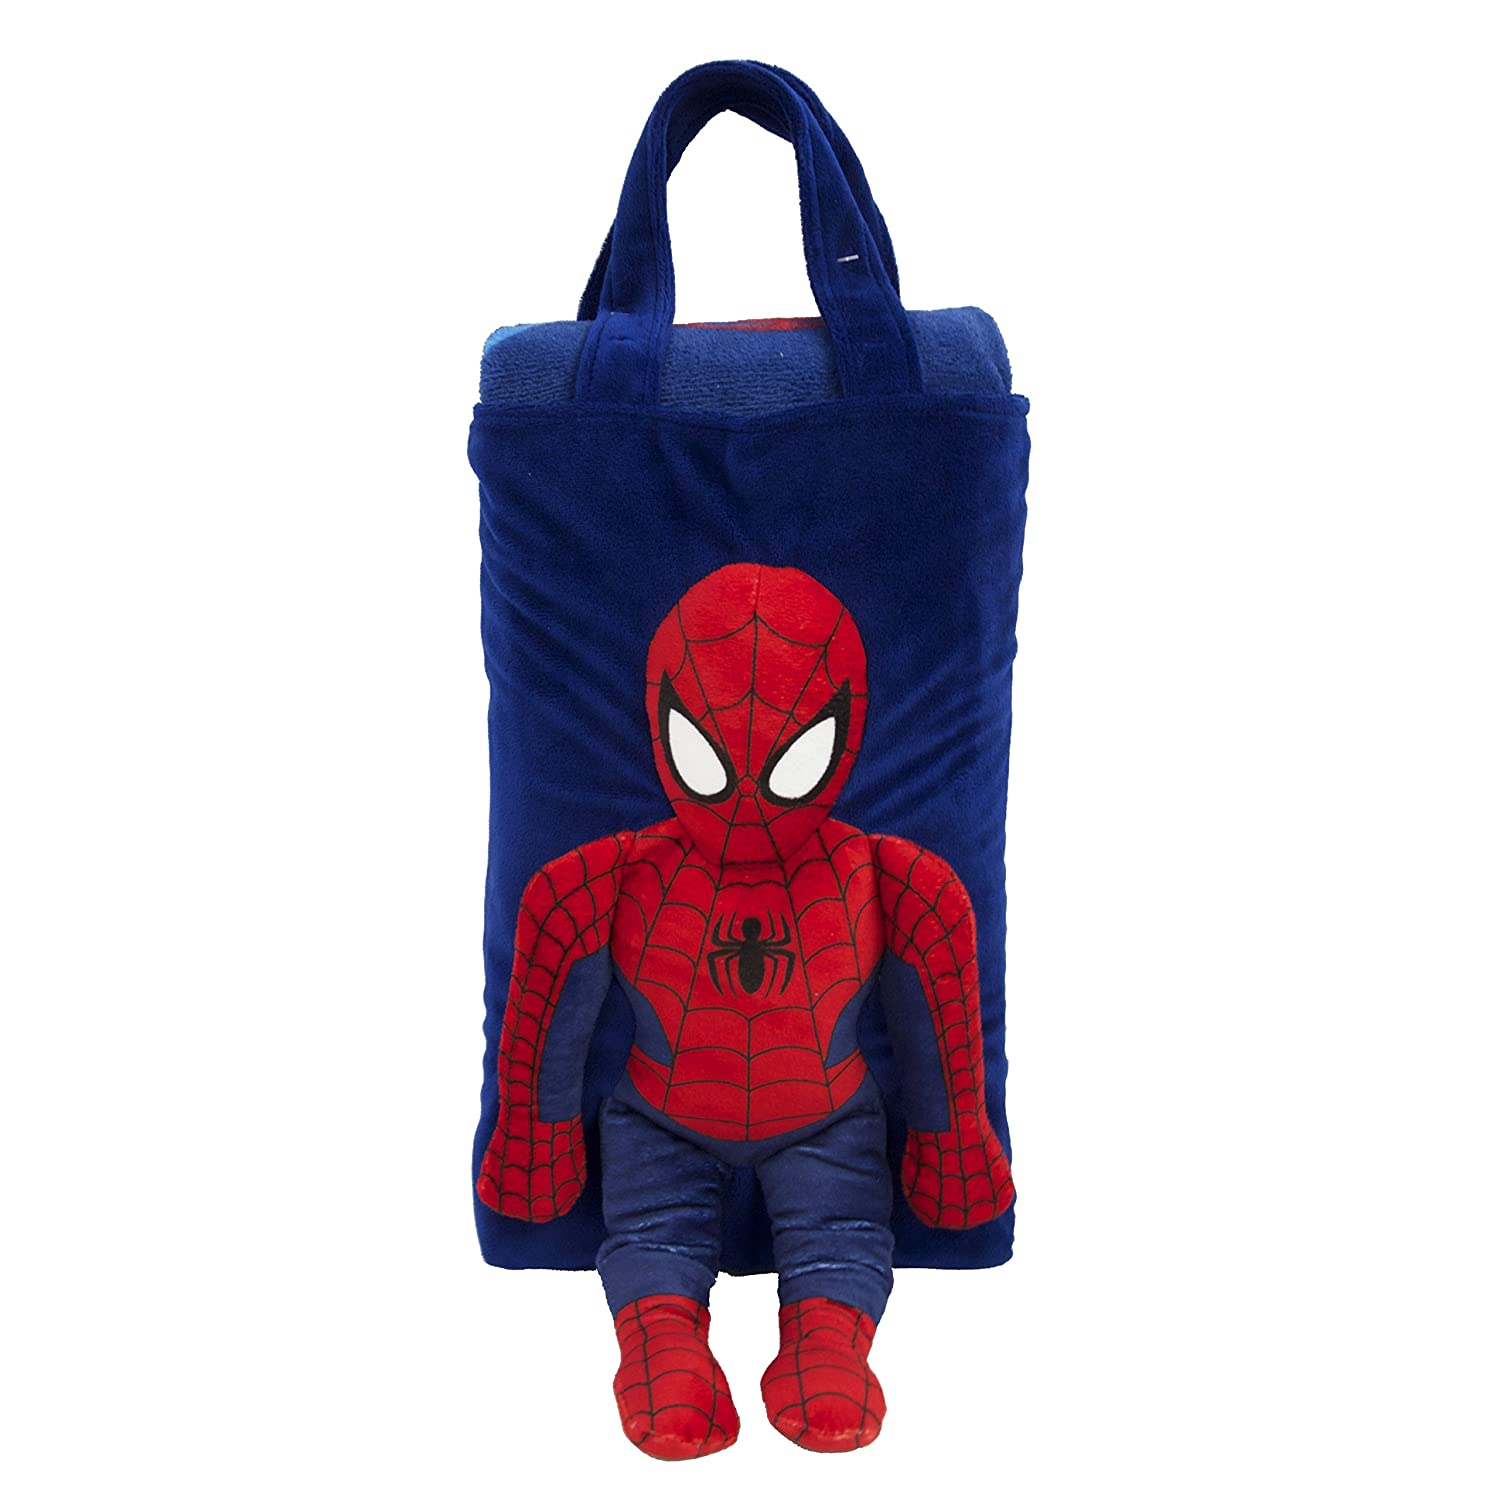 Marvel Spiderman Snuggle Pillow Tote includes blanket set Jay Franco and Sons JF16034WCD